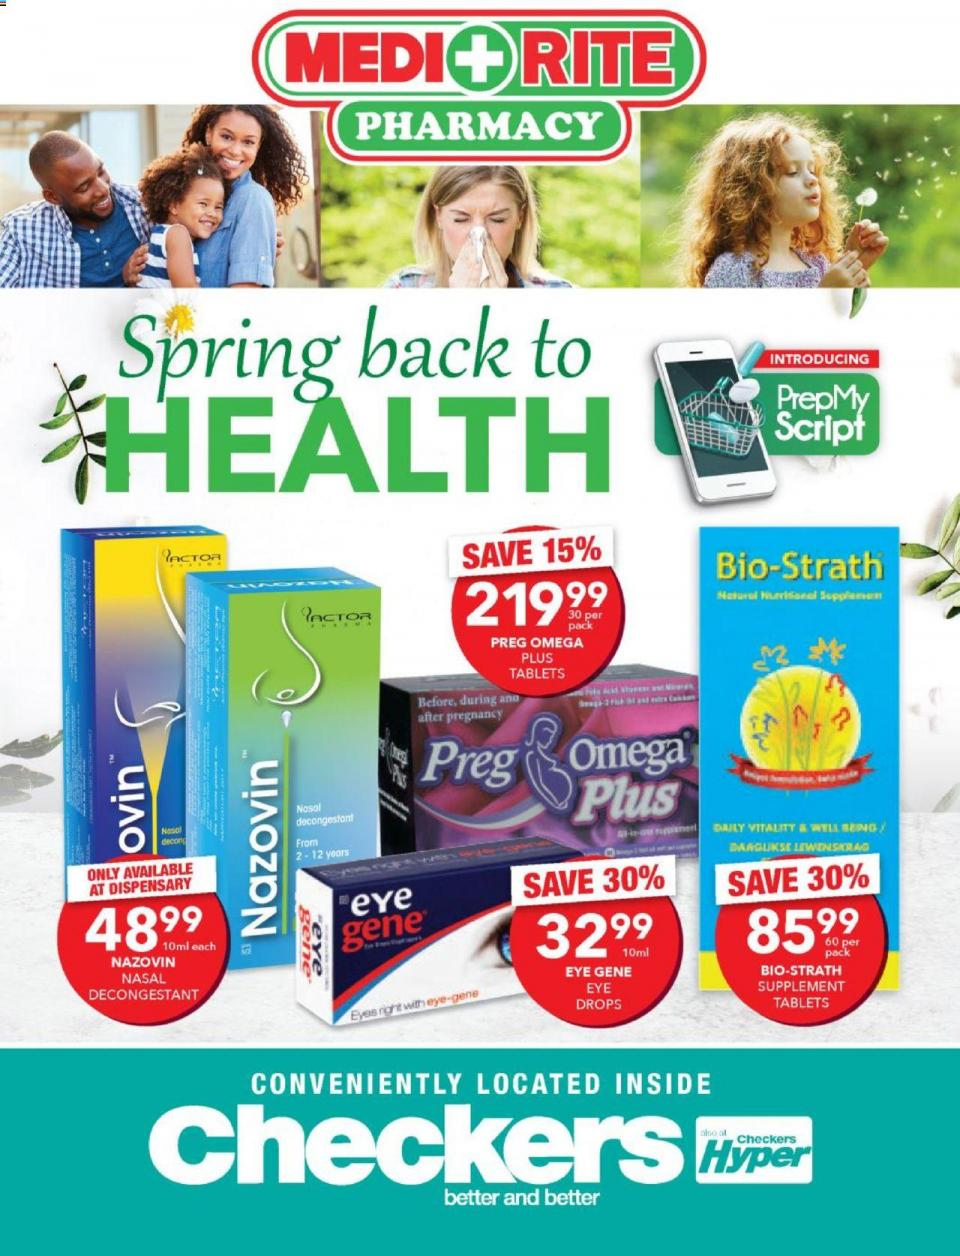 checkers specials medirite 20 september 2019